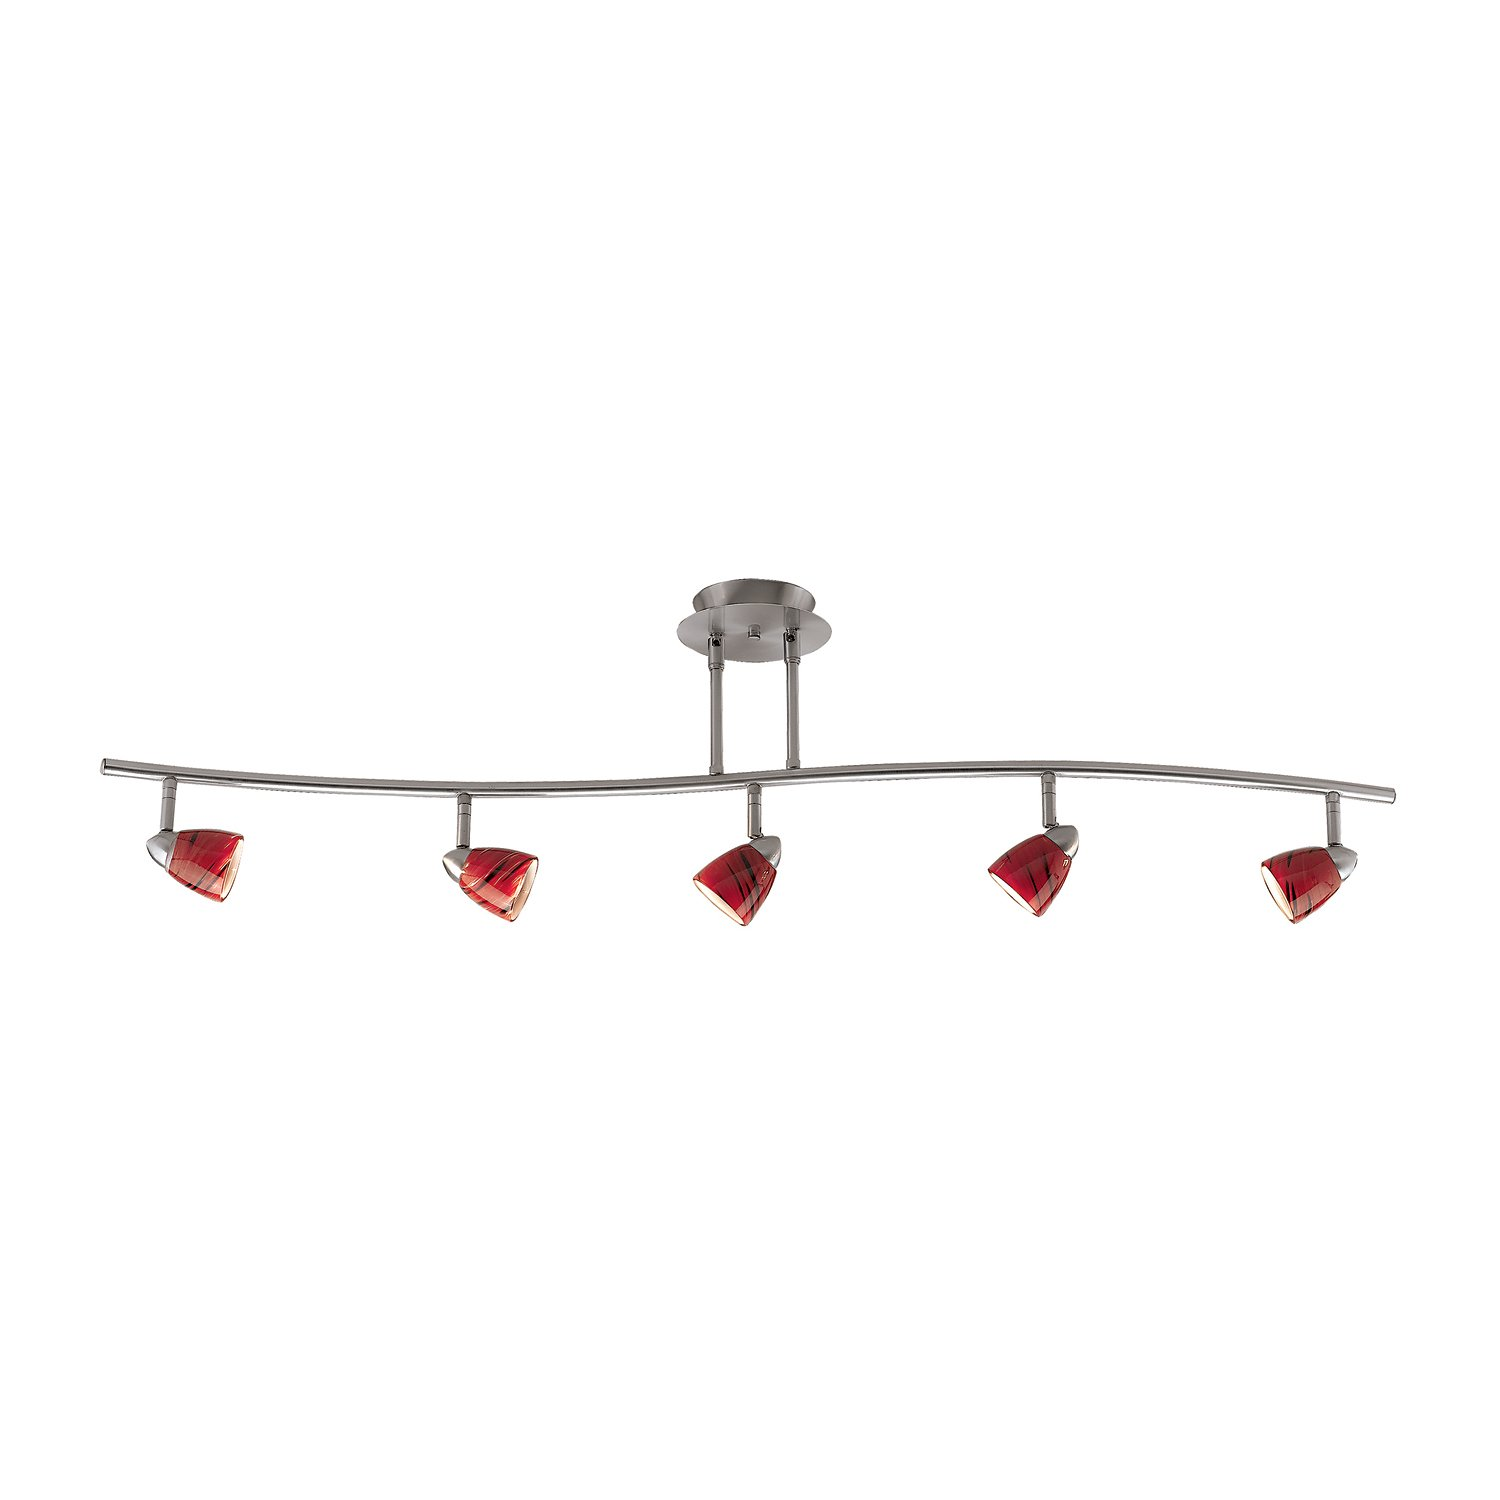 Cal Lighting SL-954-5 5 Light Serpentine Track Lighting Kit ...